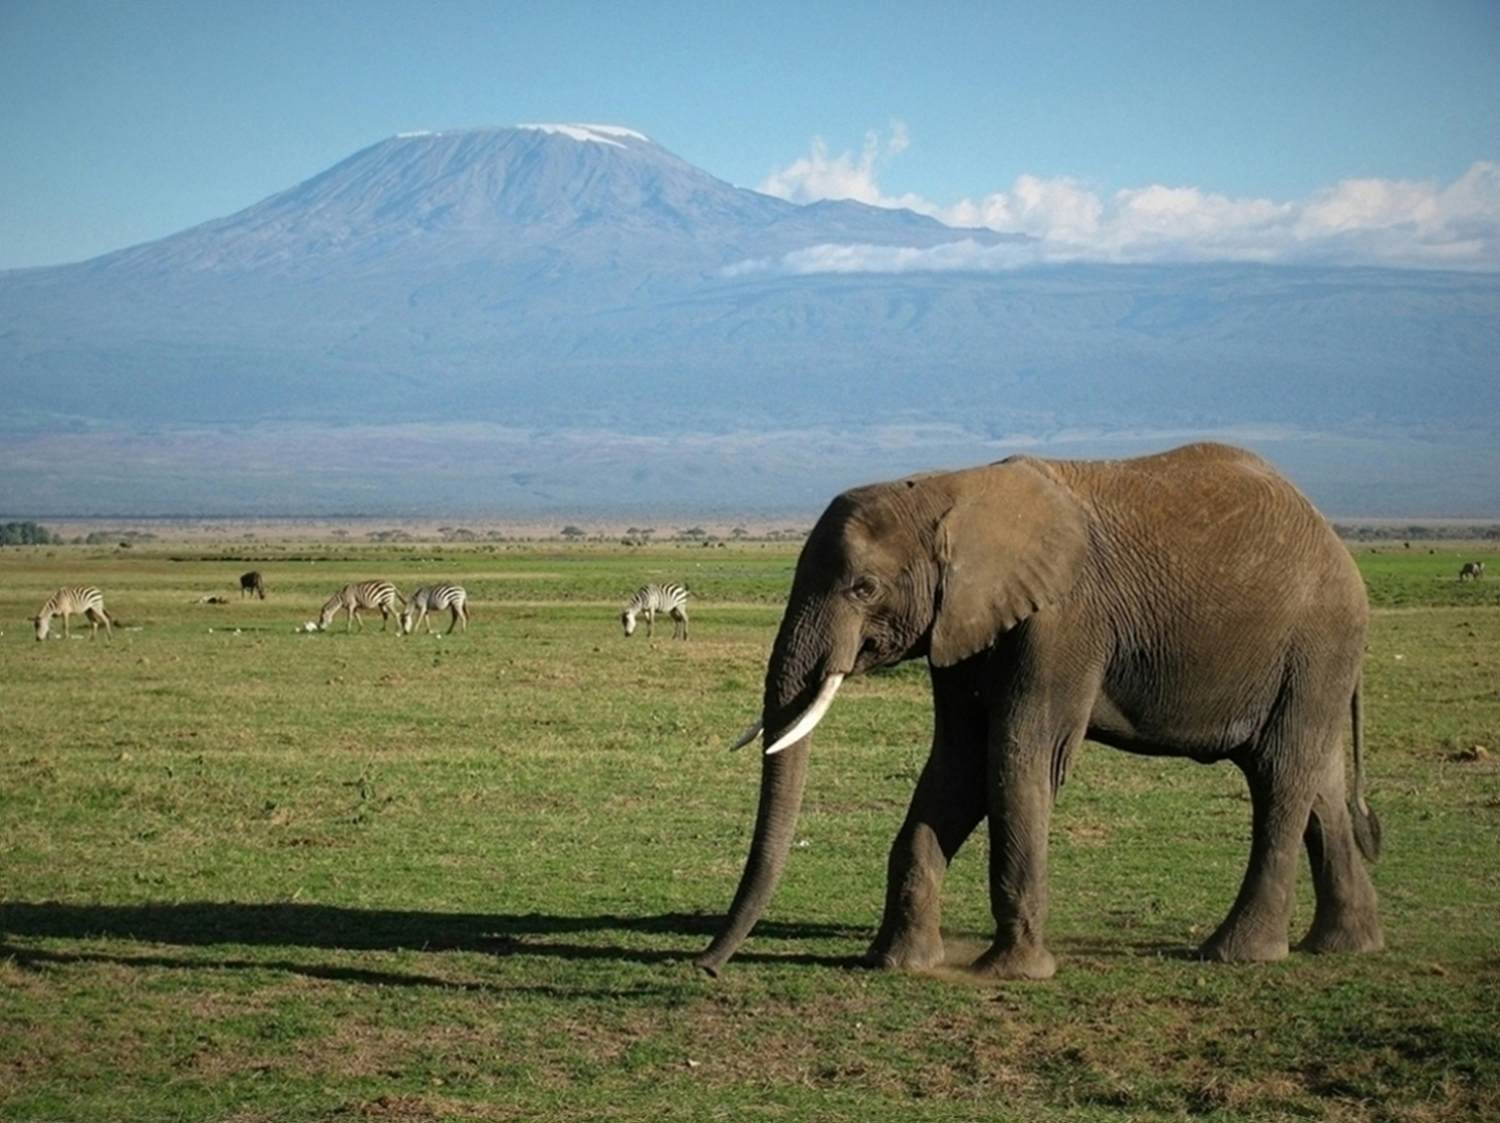 https://bubo.sk/uploads/galleries/16289/amboseli-img_2793.jpg